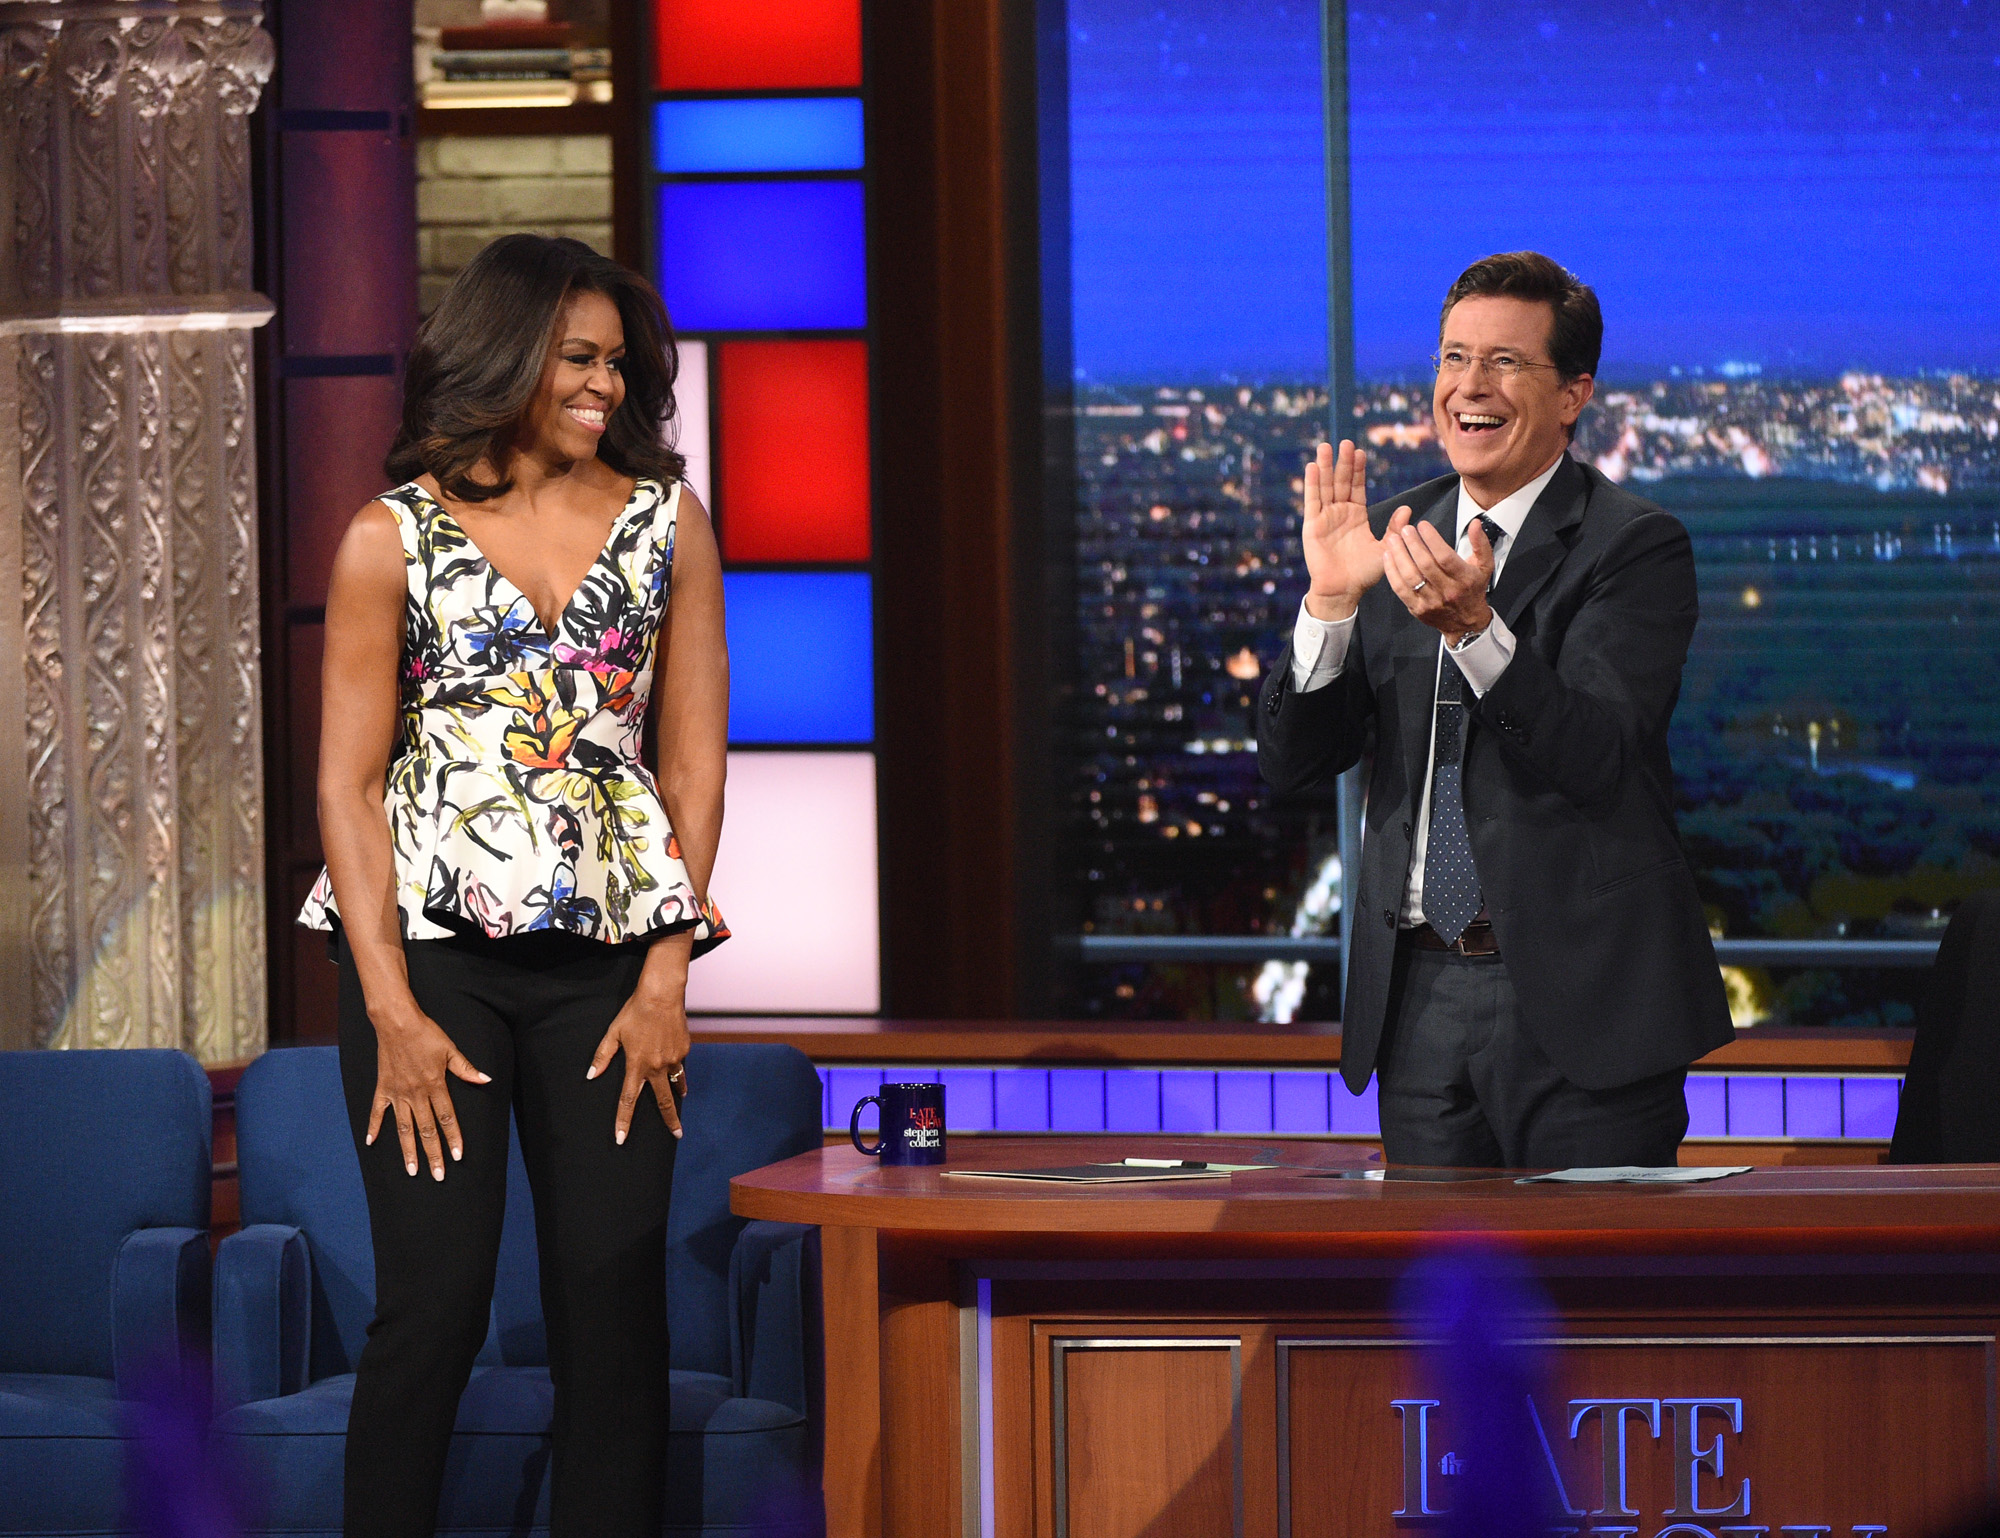 NEW YORK - SEPTEMBER 28: First Lady Michelle Obama on The Late Show with Stephen Colbert, Monday Sept. 28, 2015 on the CBS Television Network. (Photo by Jeffrey R. Staab/CBS via Getty Images)